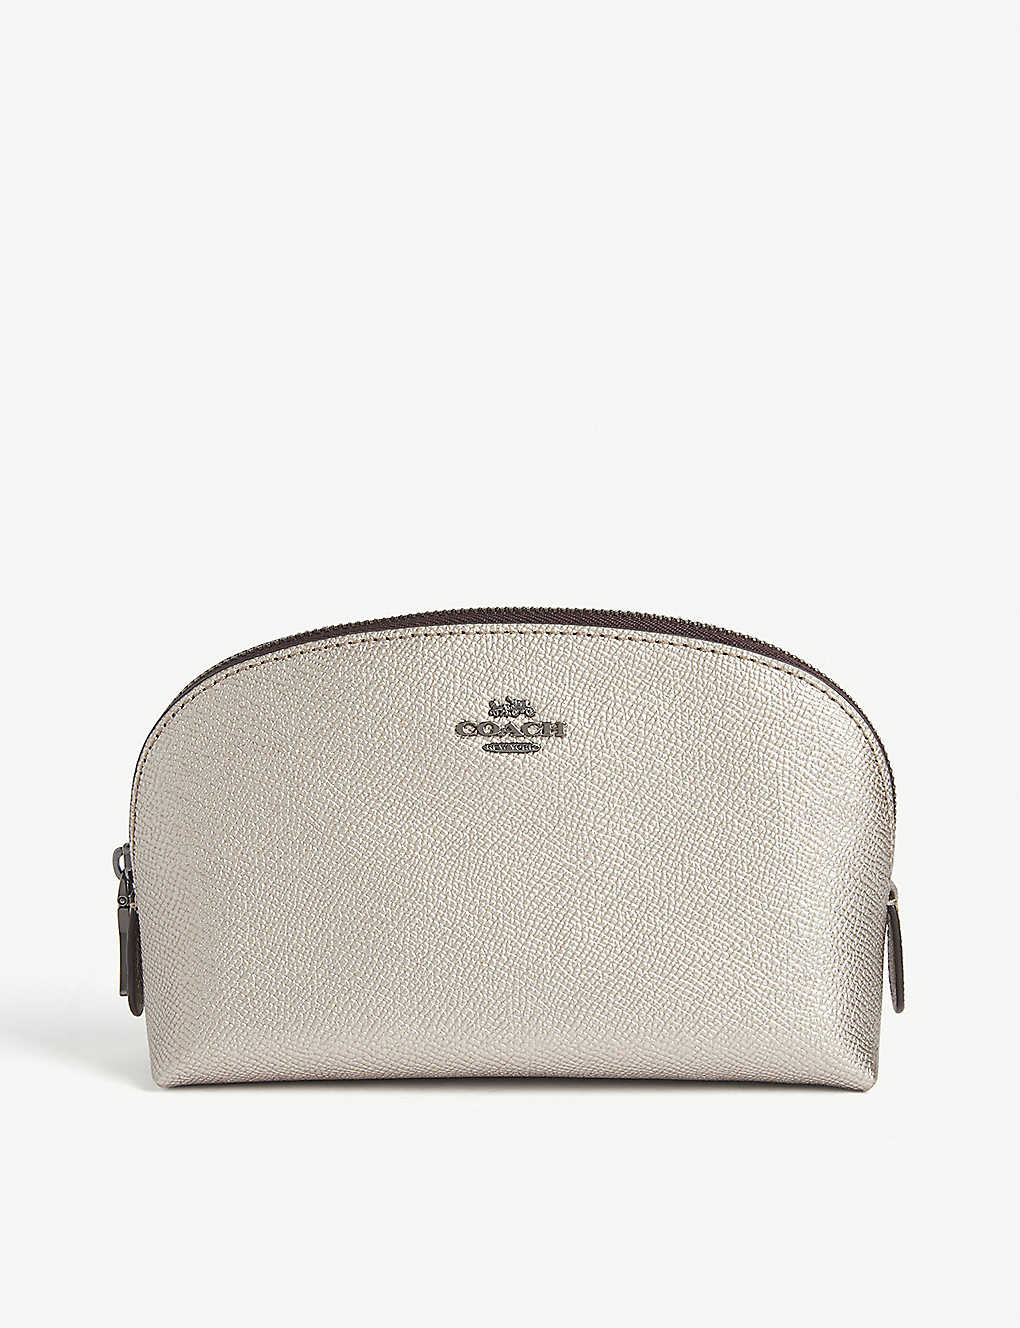 COACH: Leather cosmetic case